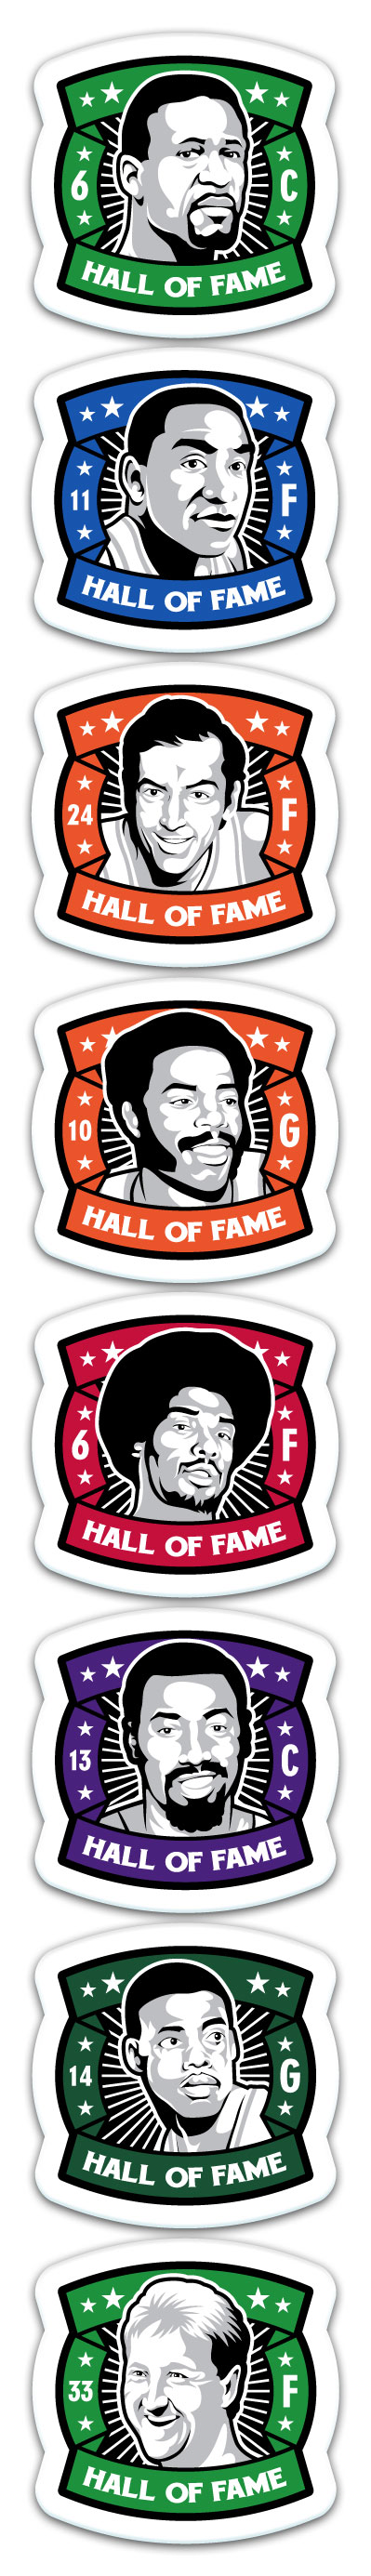 07-08-Premier-Basketball-Patches